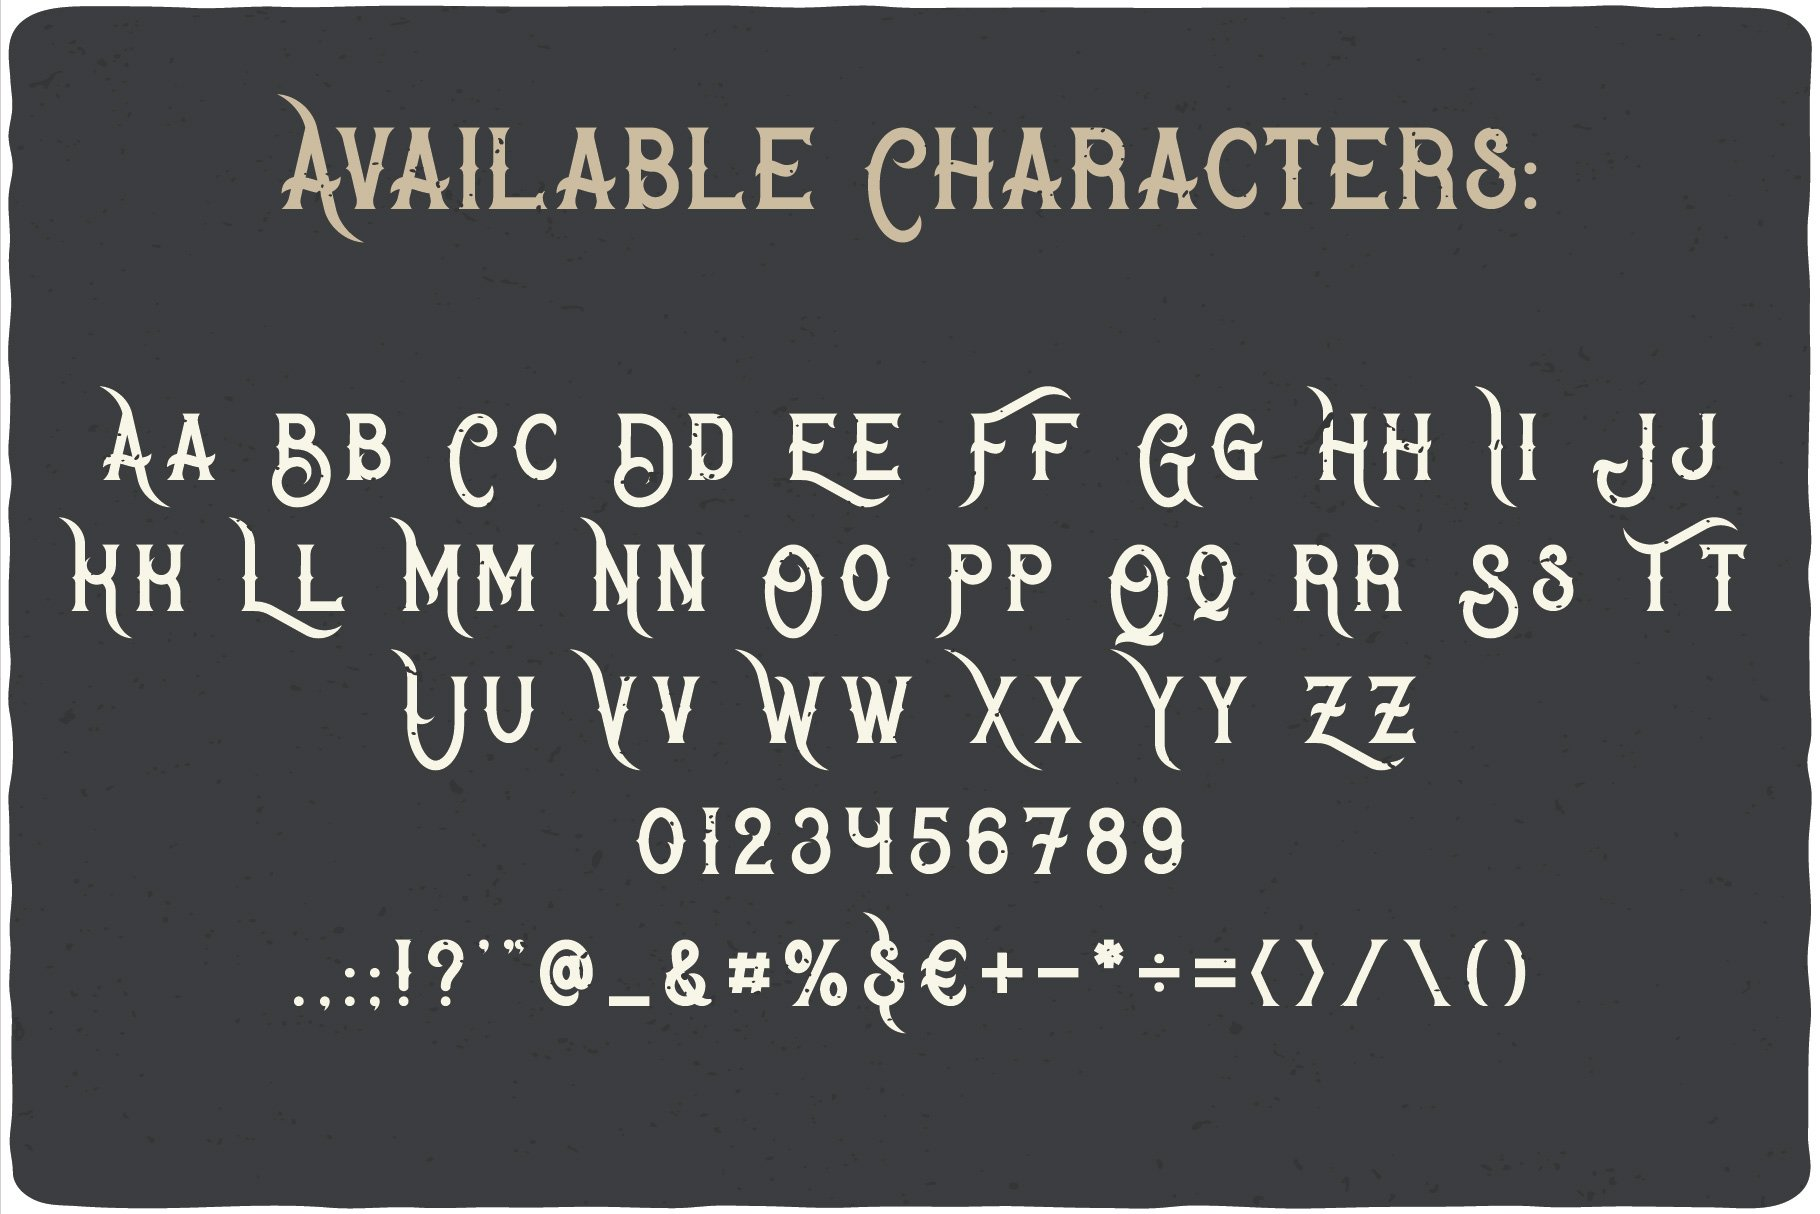 Available characters of Bandidas Typeface.